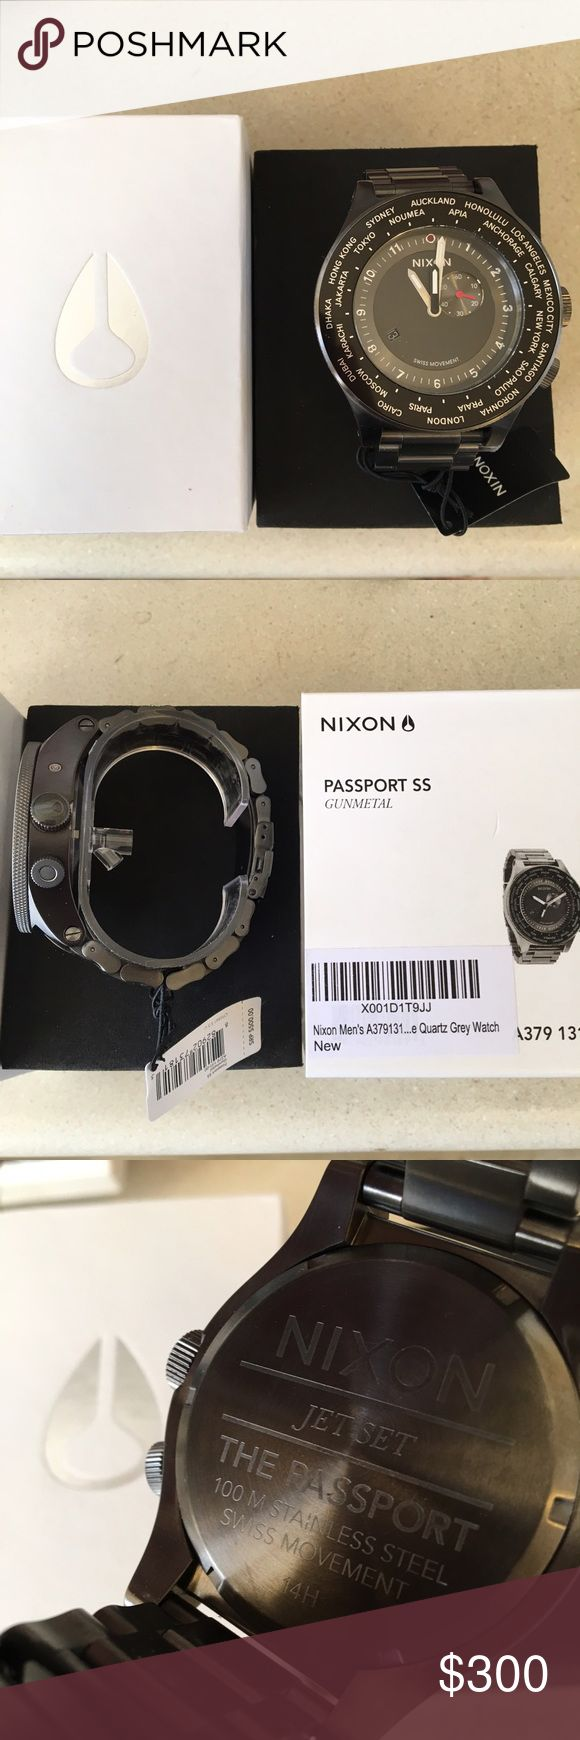 """Nixon """"Passport SS"""" Watch (New In Box) Nixon """"Passport"""" unisex Watch (NEW WITH TAGS) for $240 OBO. Color is Gunmetal with Black accents. This is a brand new watch in the box and was bought for a photo shoot by the stylist and we didn't end up using it. Open to offers. Nixon Accessories Watches"""